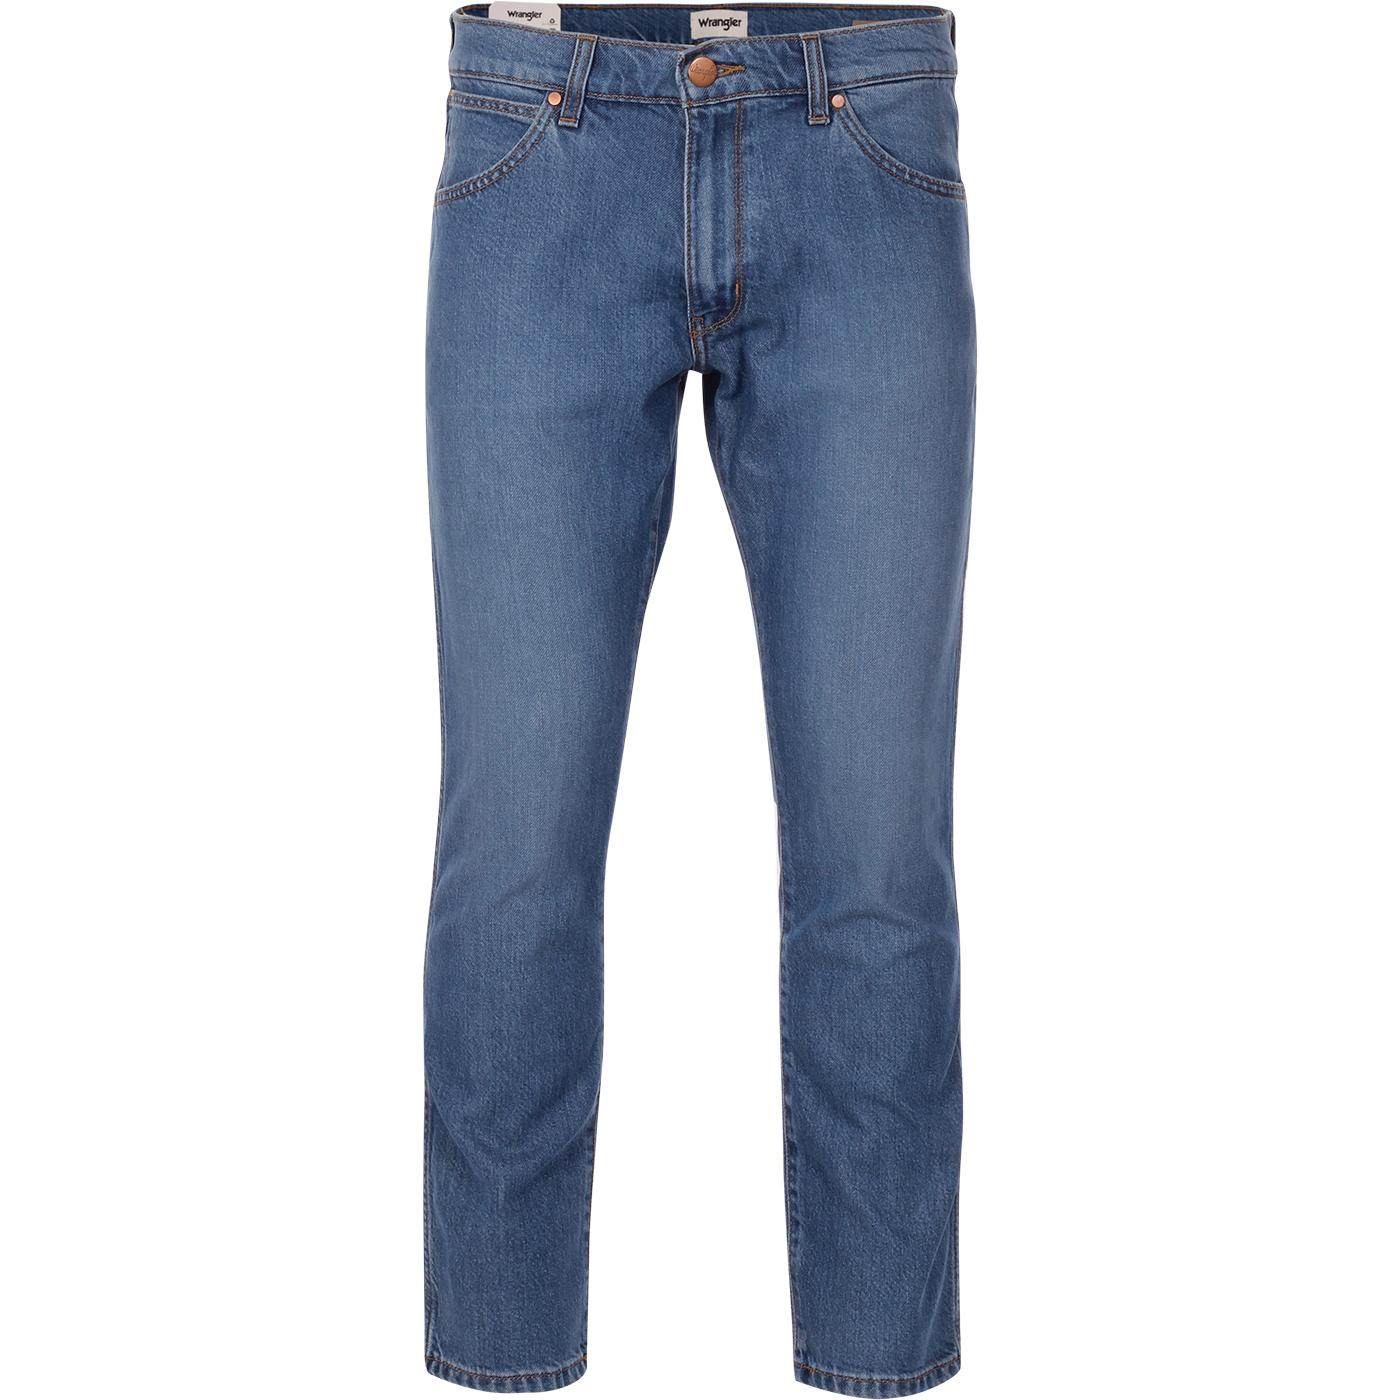 Larston WRANGLER Slim Taper Spaced Out Denim Jeans